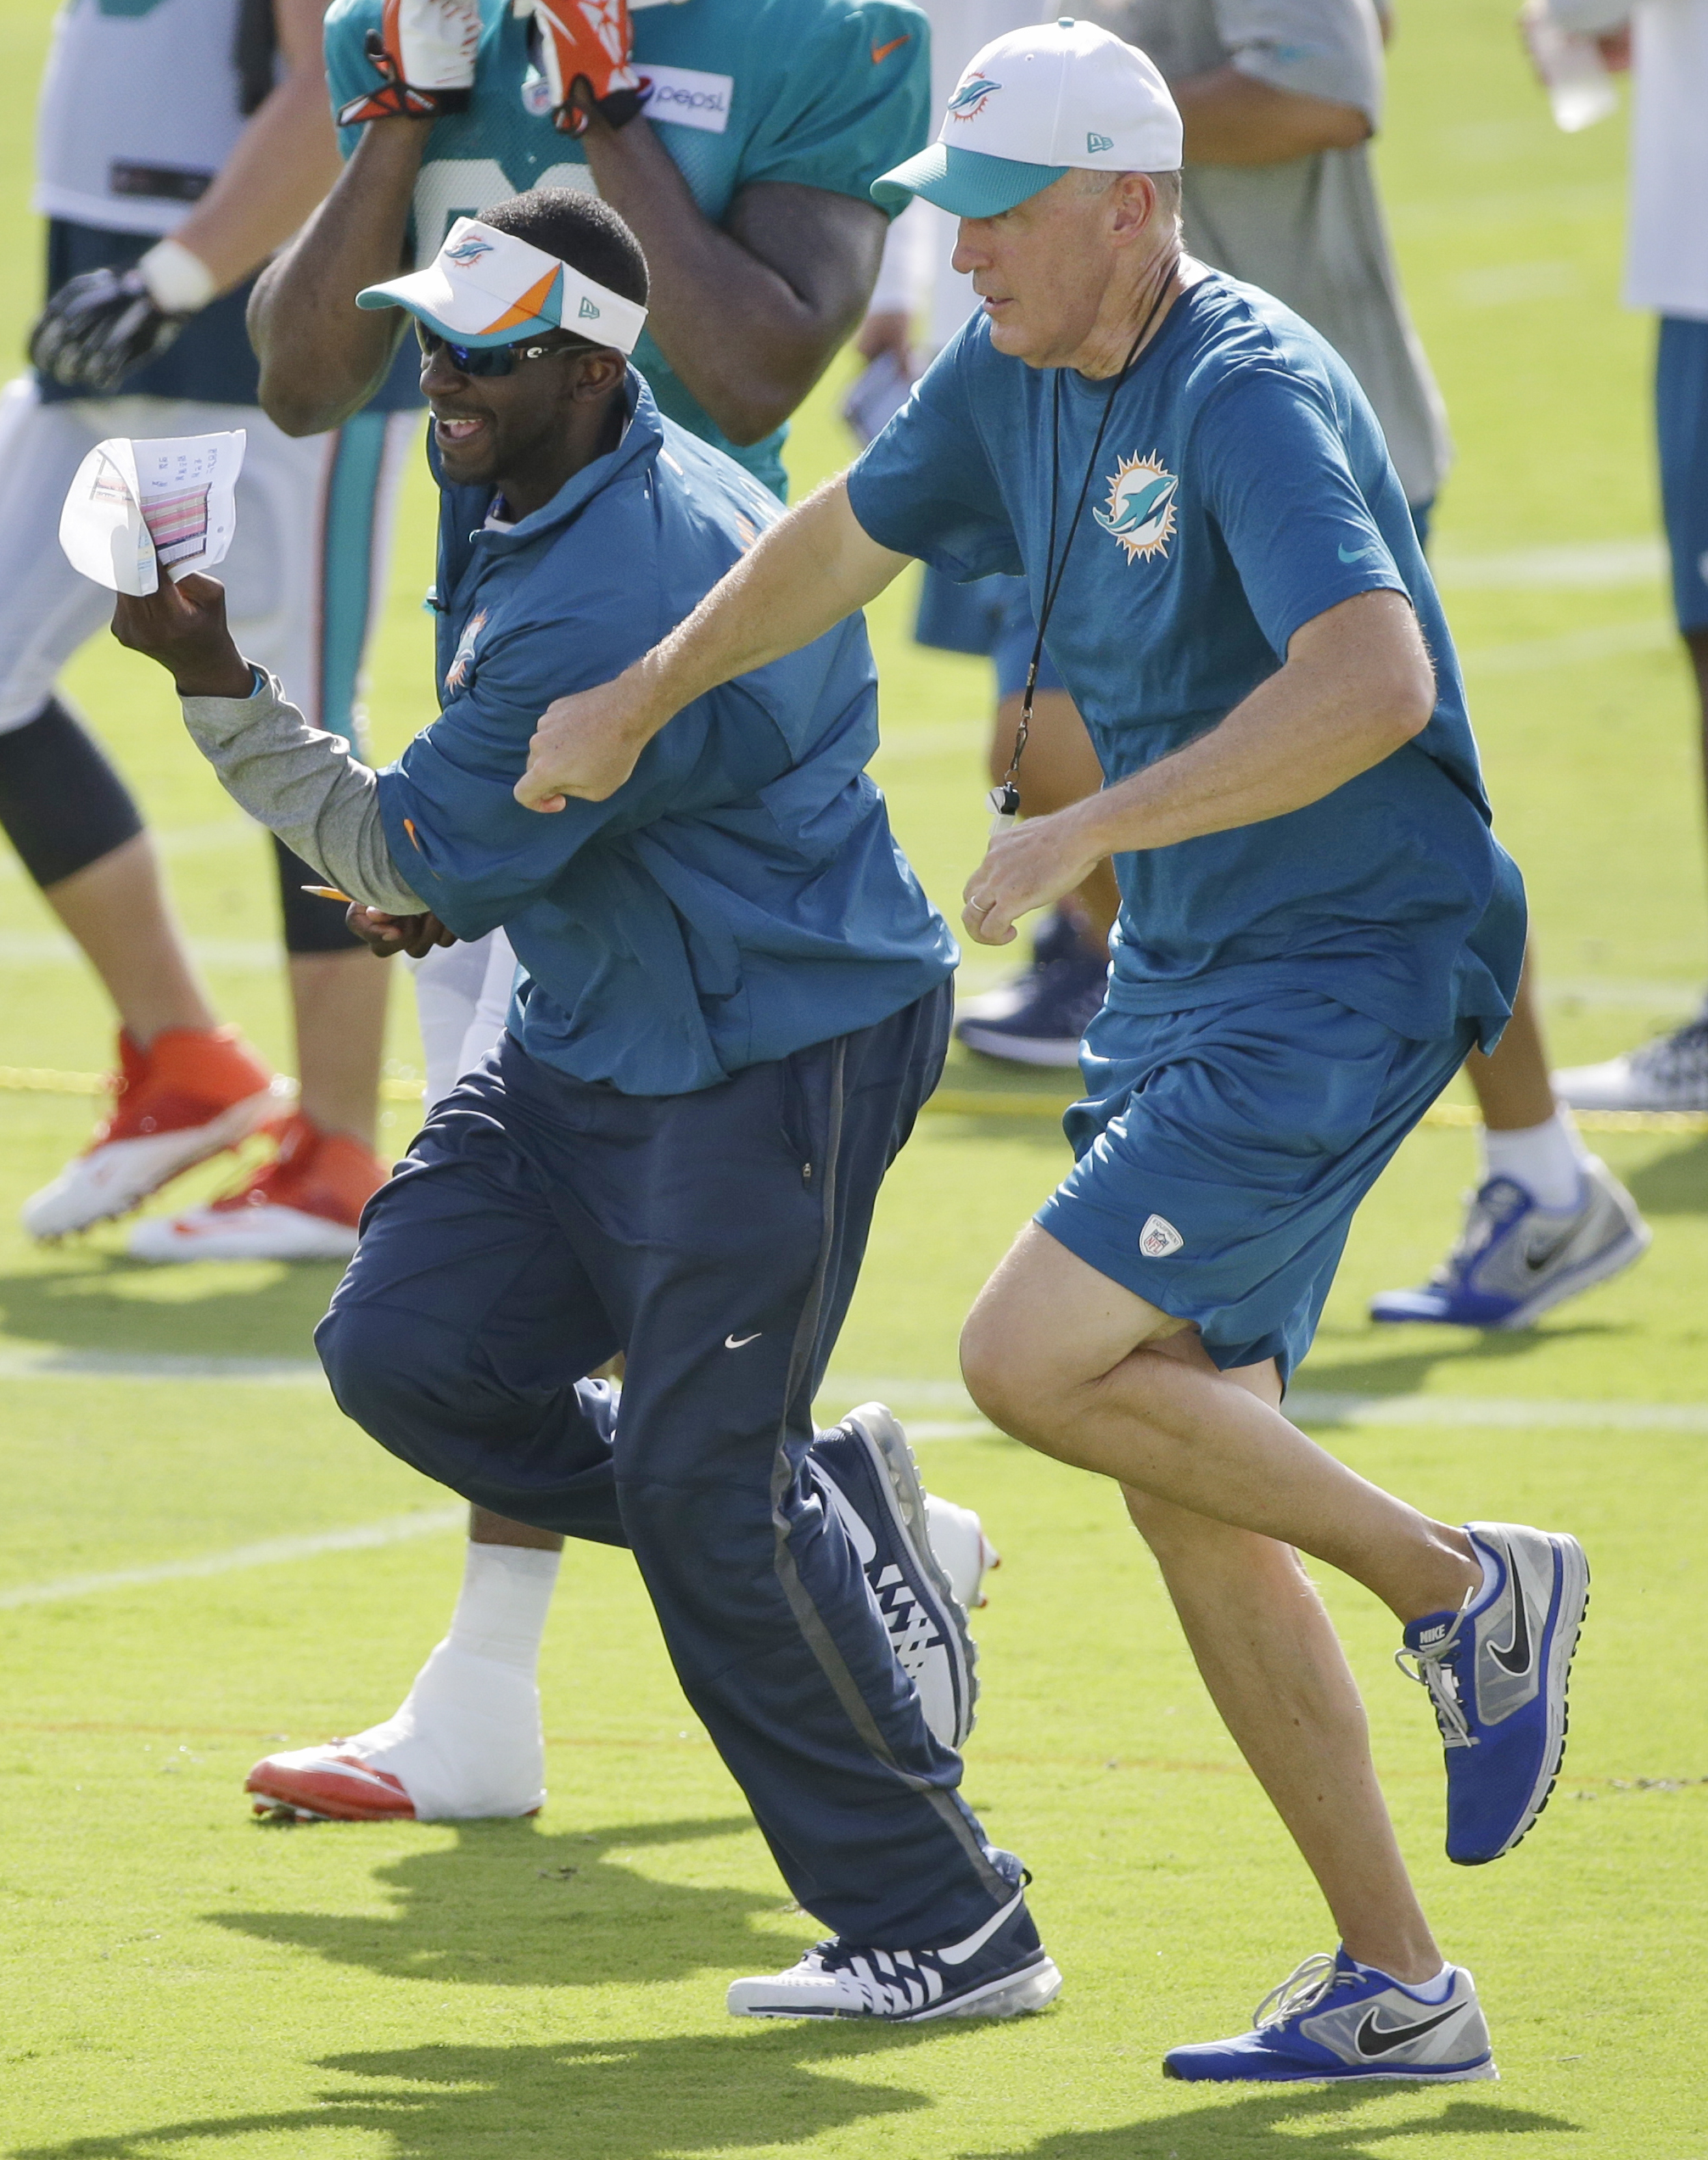 In this Wednesday, Aug. 5, 2015, photo, Miami Dolphins head coach Joe Philbin, foreground, races assistant defensive backs coach Blue Adams as they change practice fields at the teams NFL football training camp in Davie, Fla. Philbin has been described as